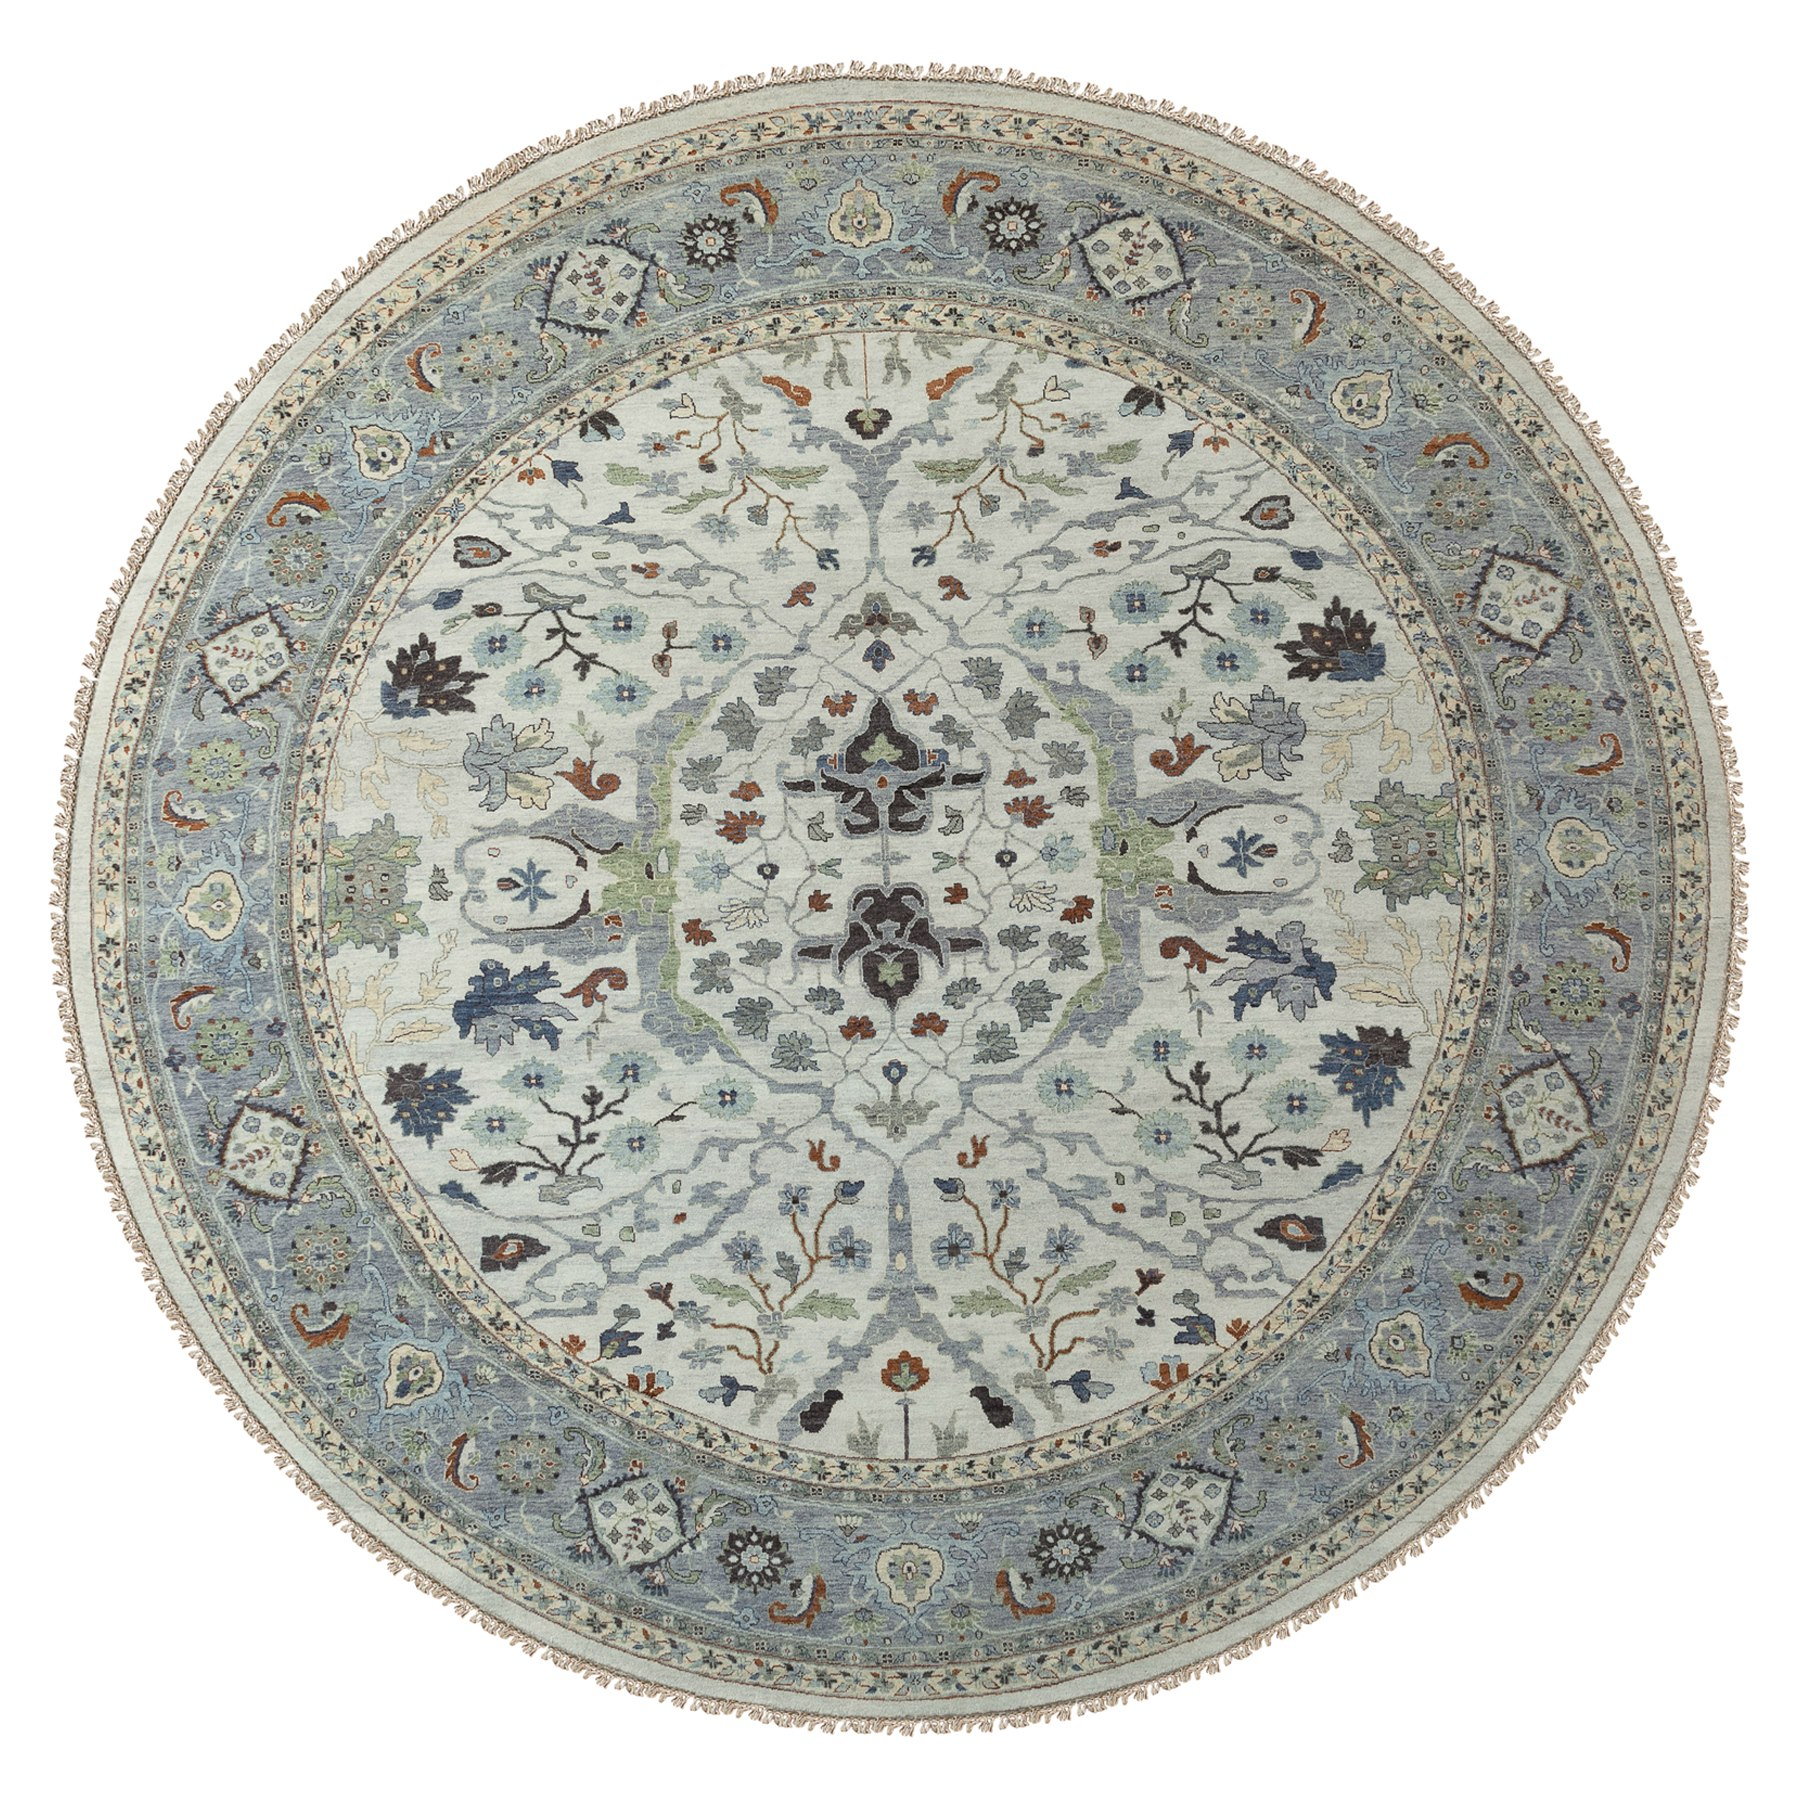 12'x12' Oversize Gray Denser Weave Oushak Large Motifs Hand Woven Pure Wool Oriental Round Rug